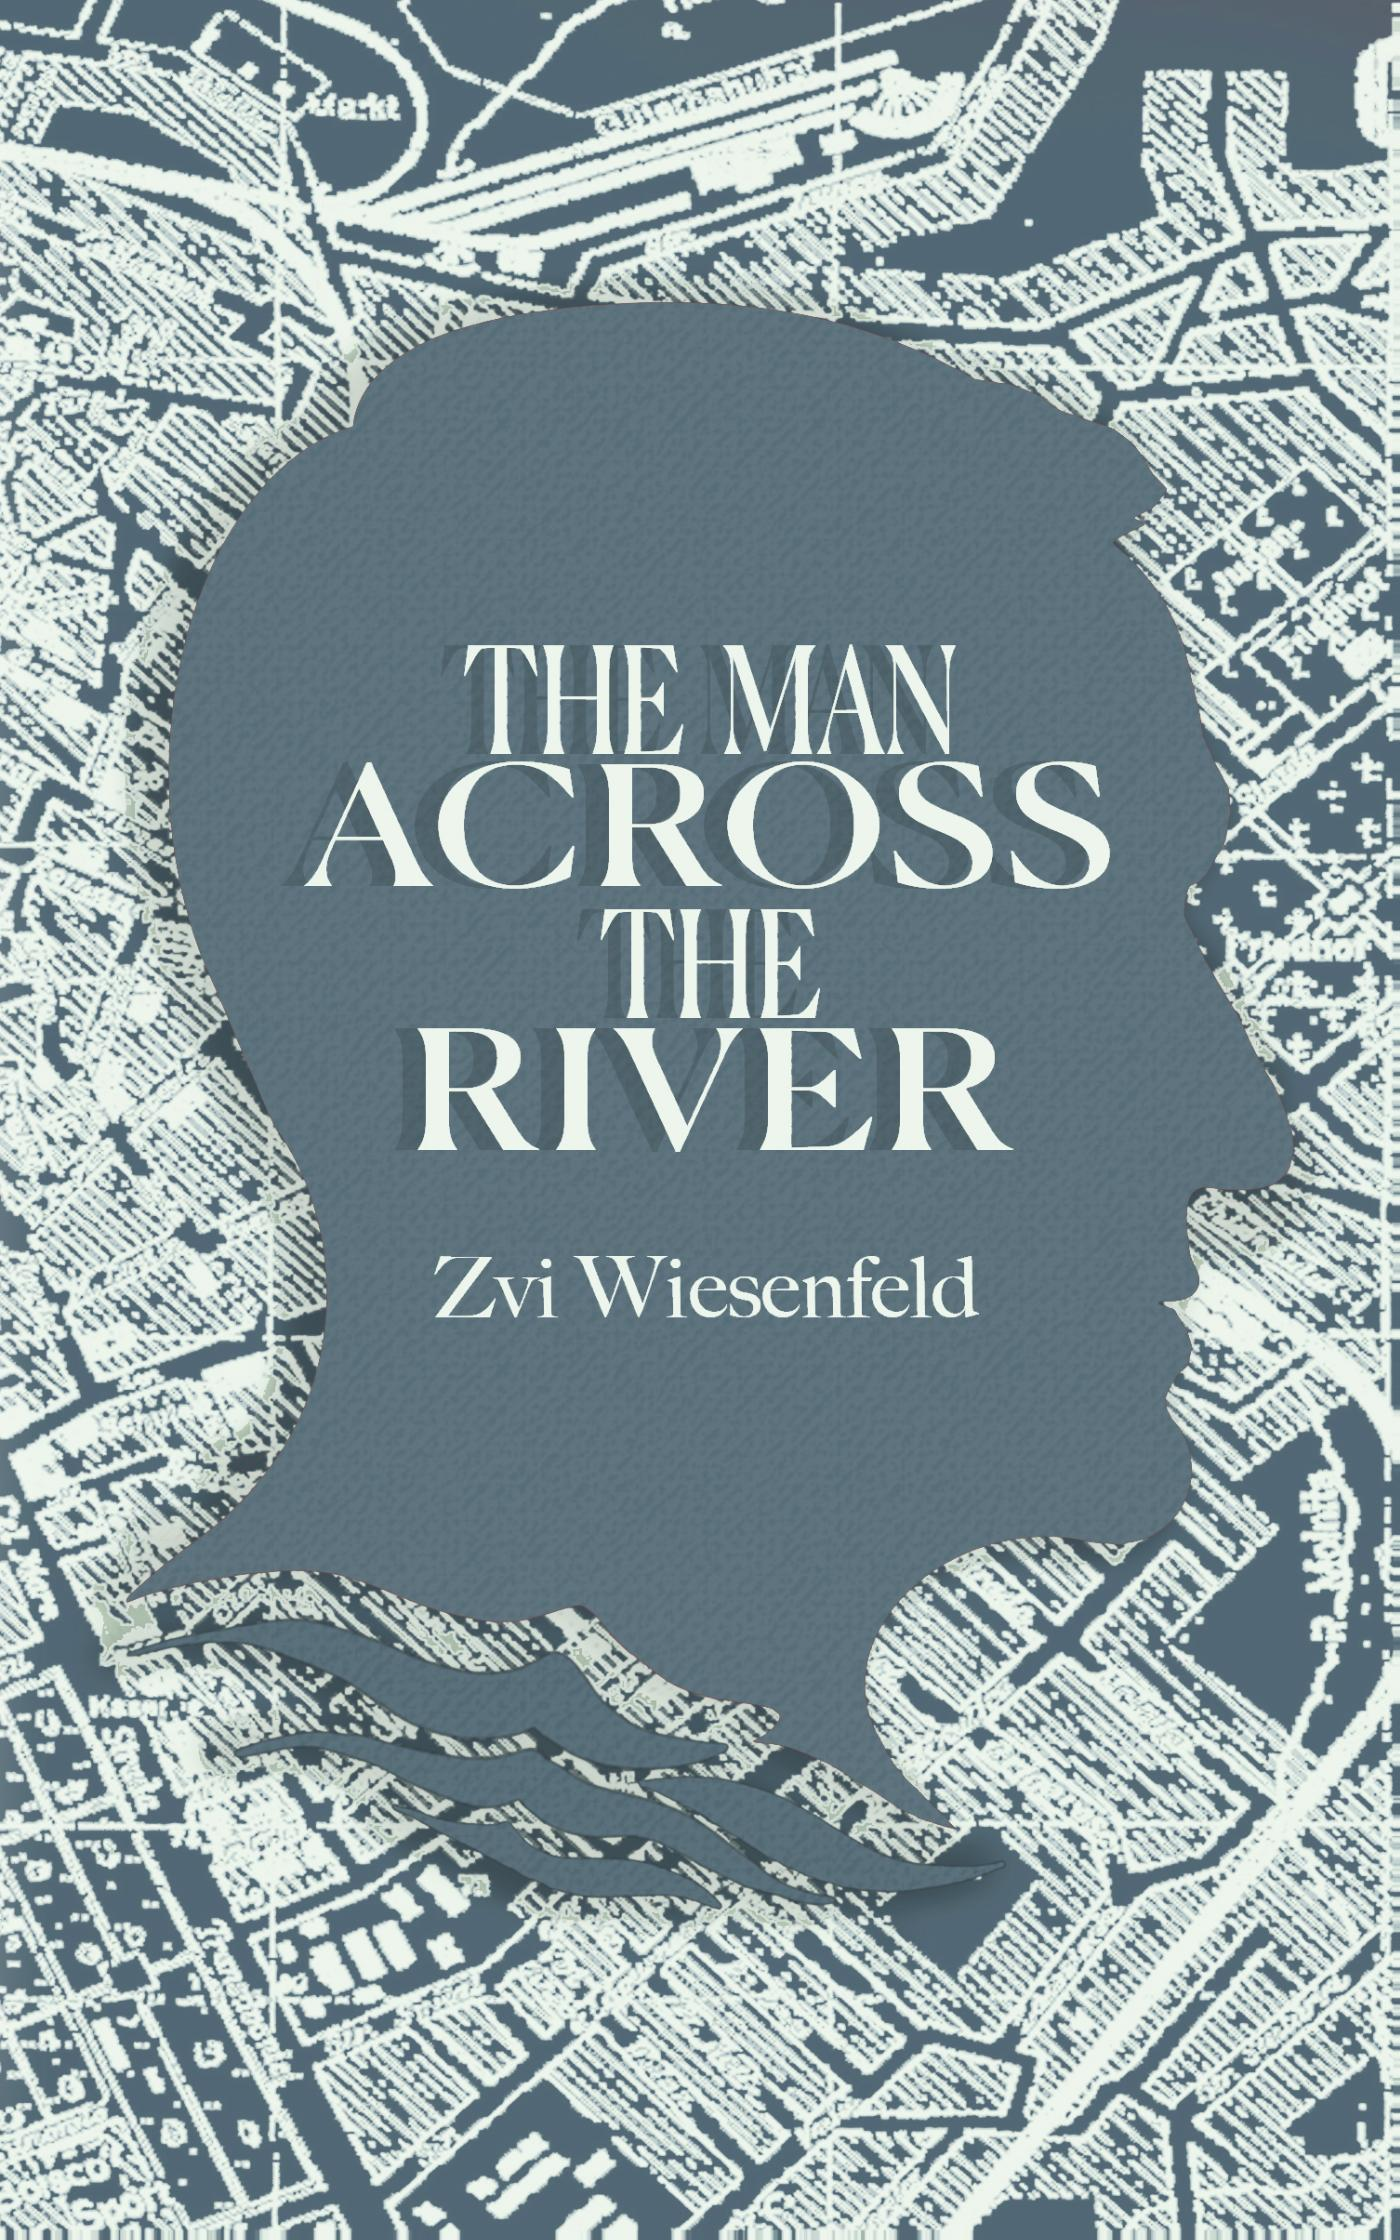 The Man Across the River